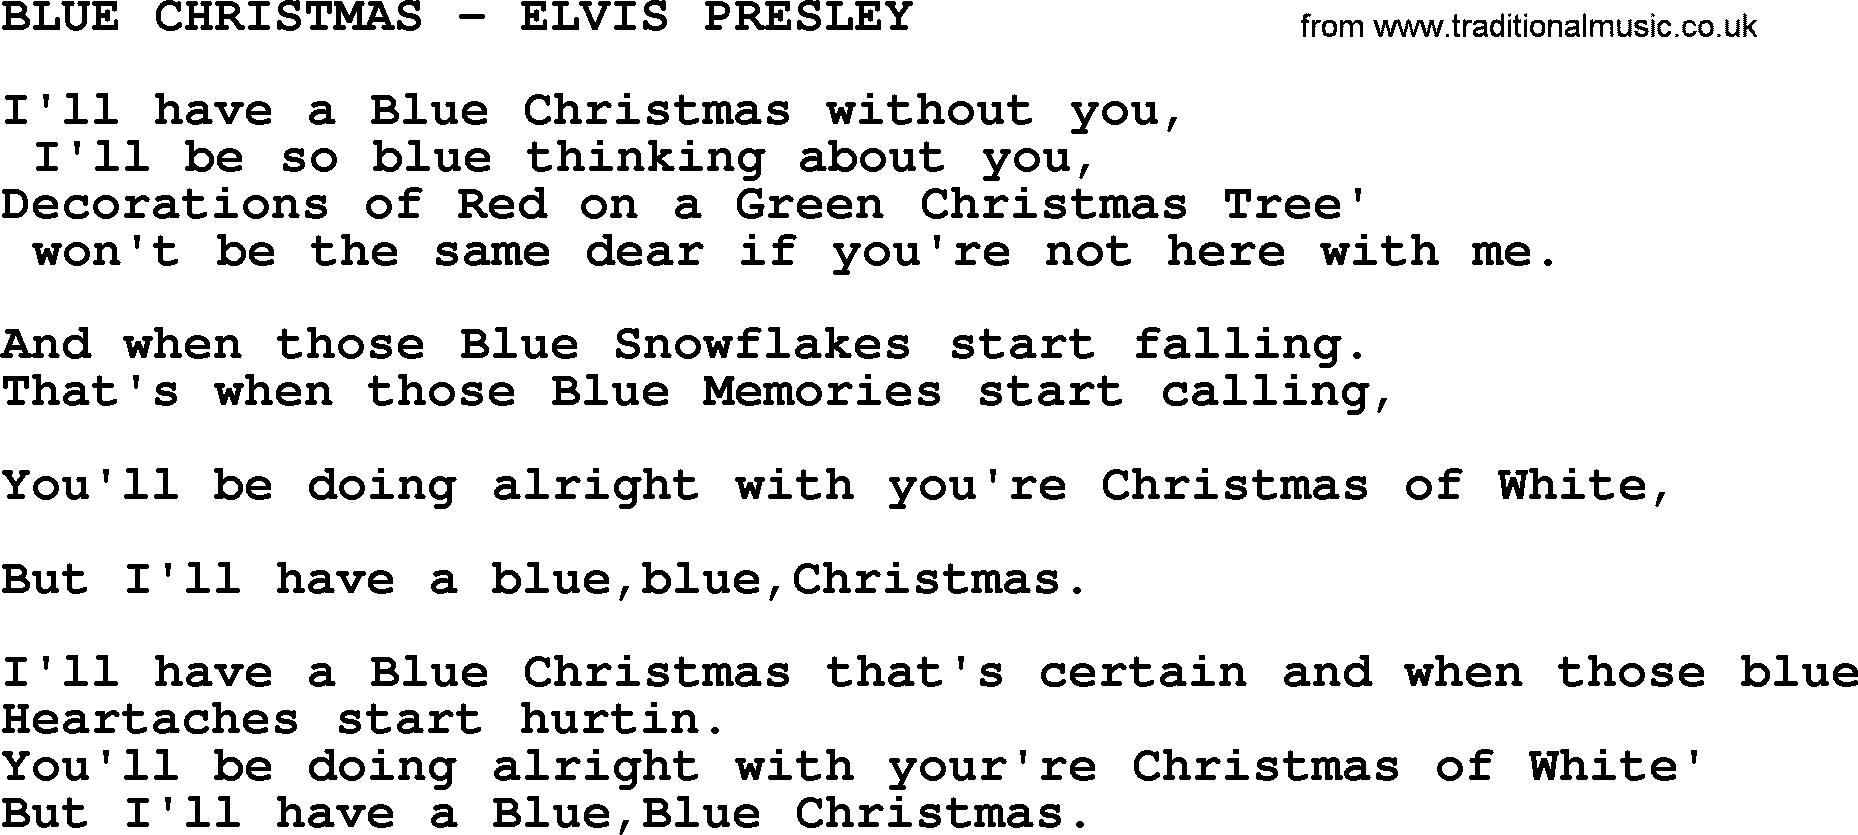 elvis presley song blue christmas elvis presley txt lyrics and chords - Blue Christmas By Elvis Presley